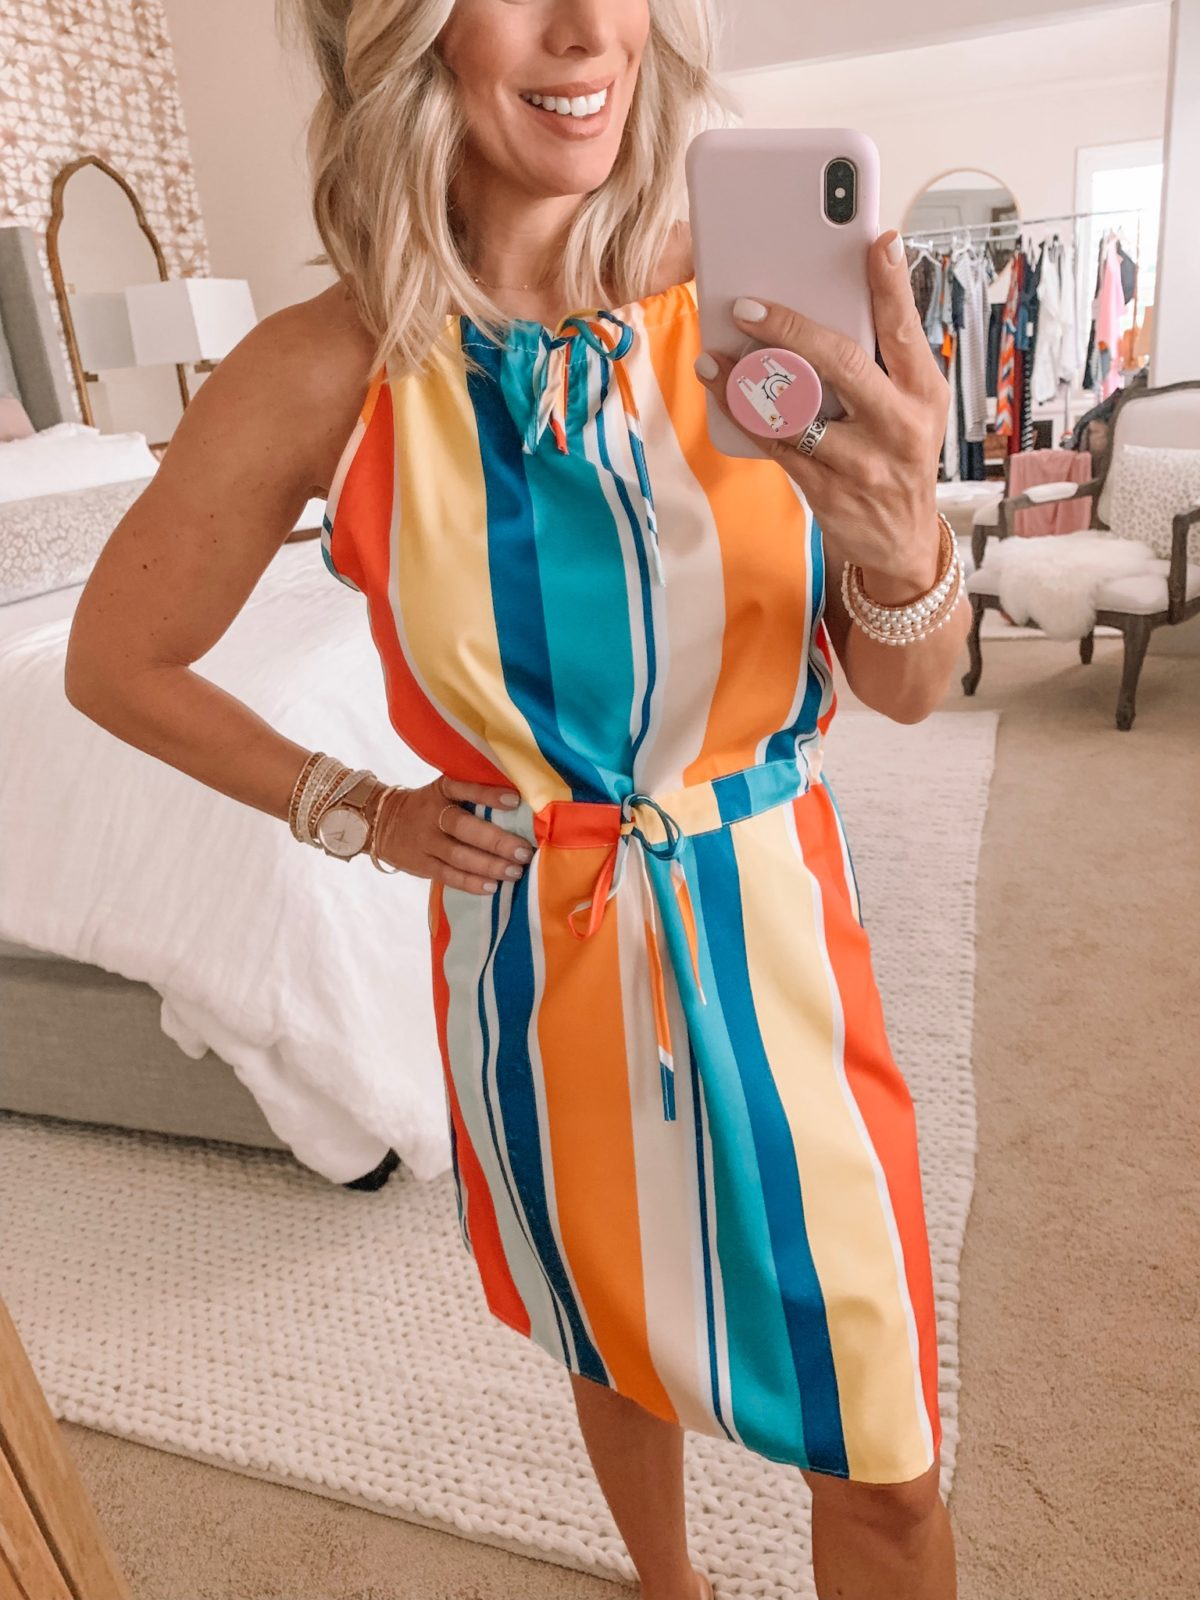 Amazon Fashion Haul - Rainbow stripe dress